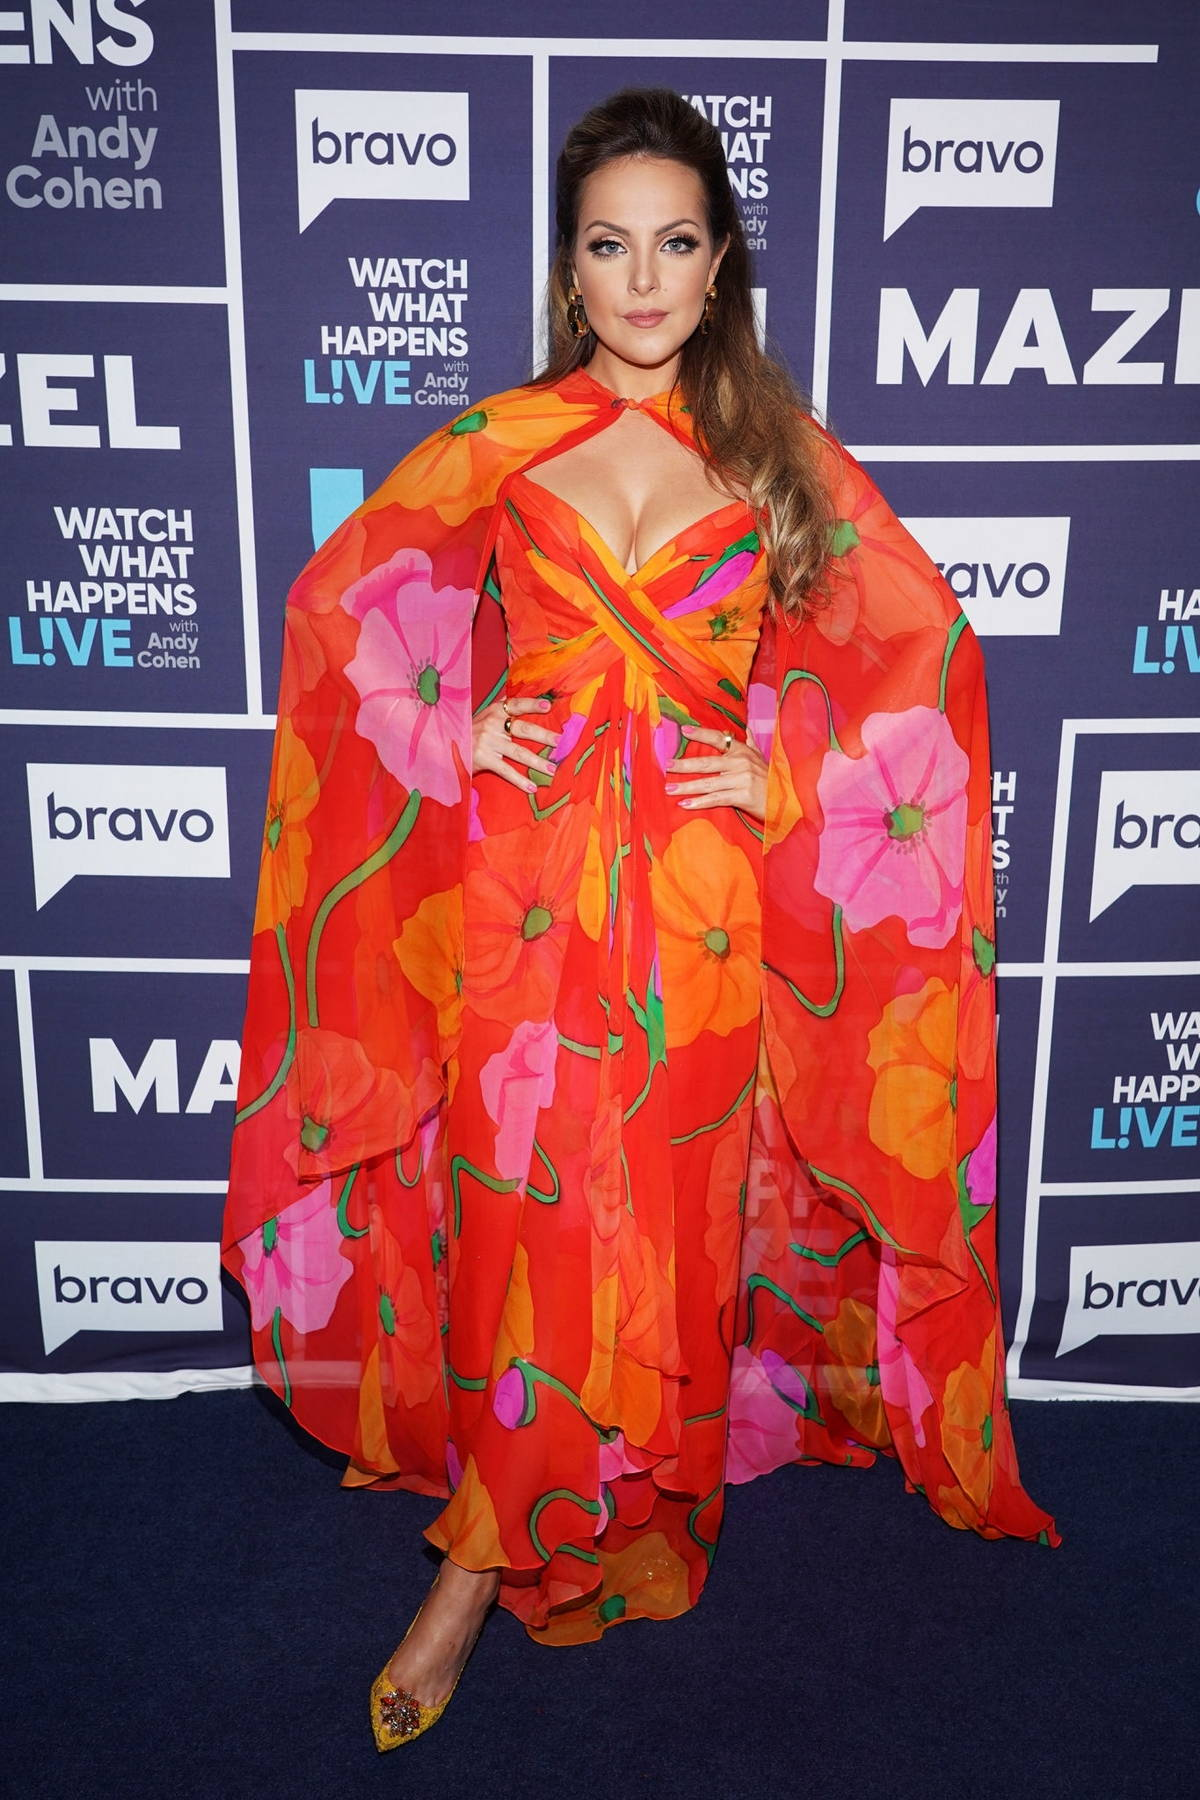 Elizabeth Gillies makes an appearance on 'Watch What Happens Live' in New York City